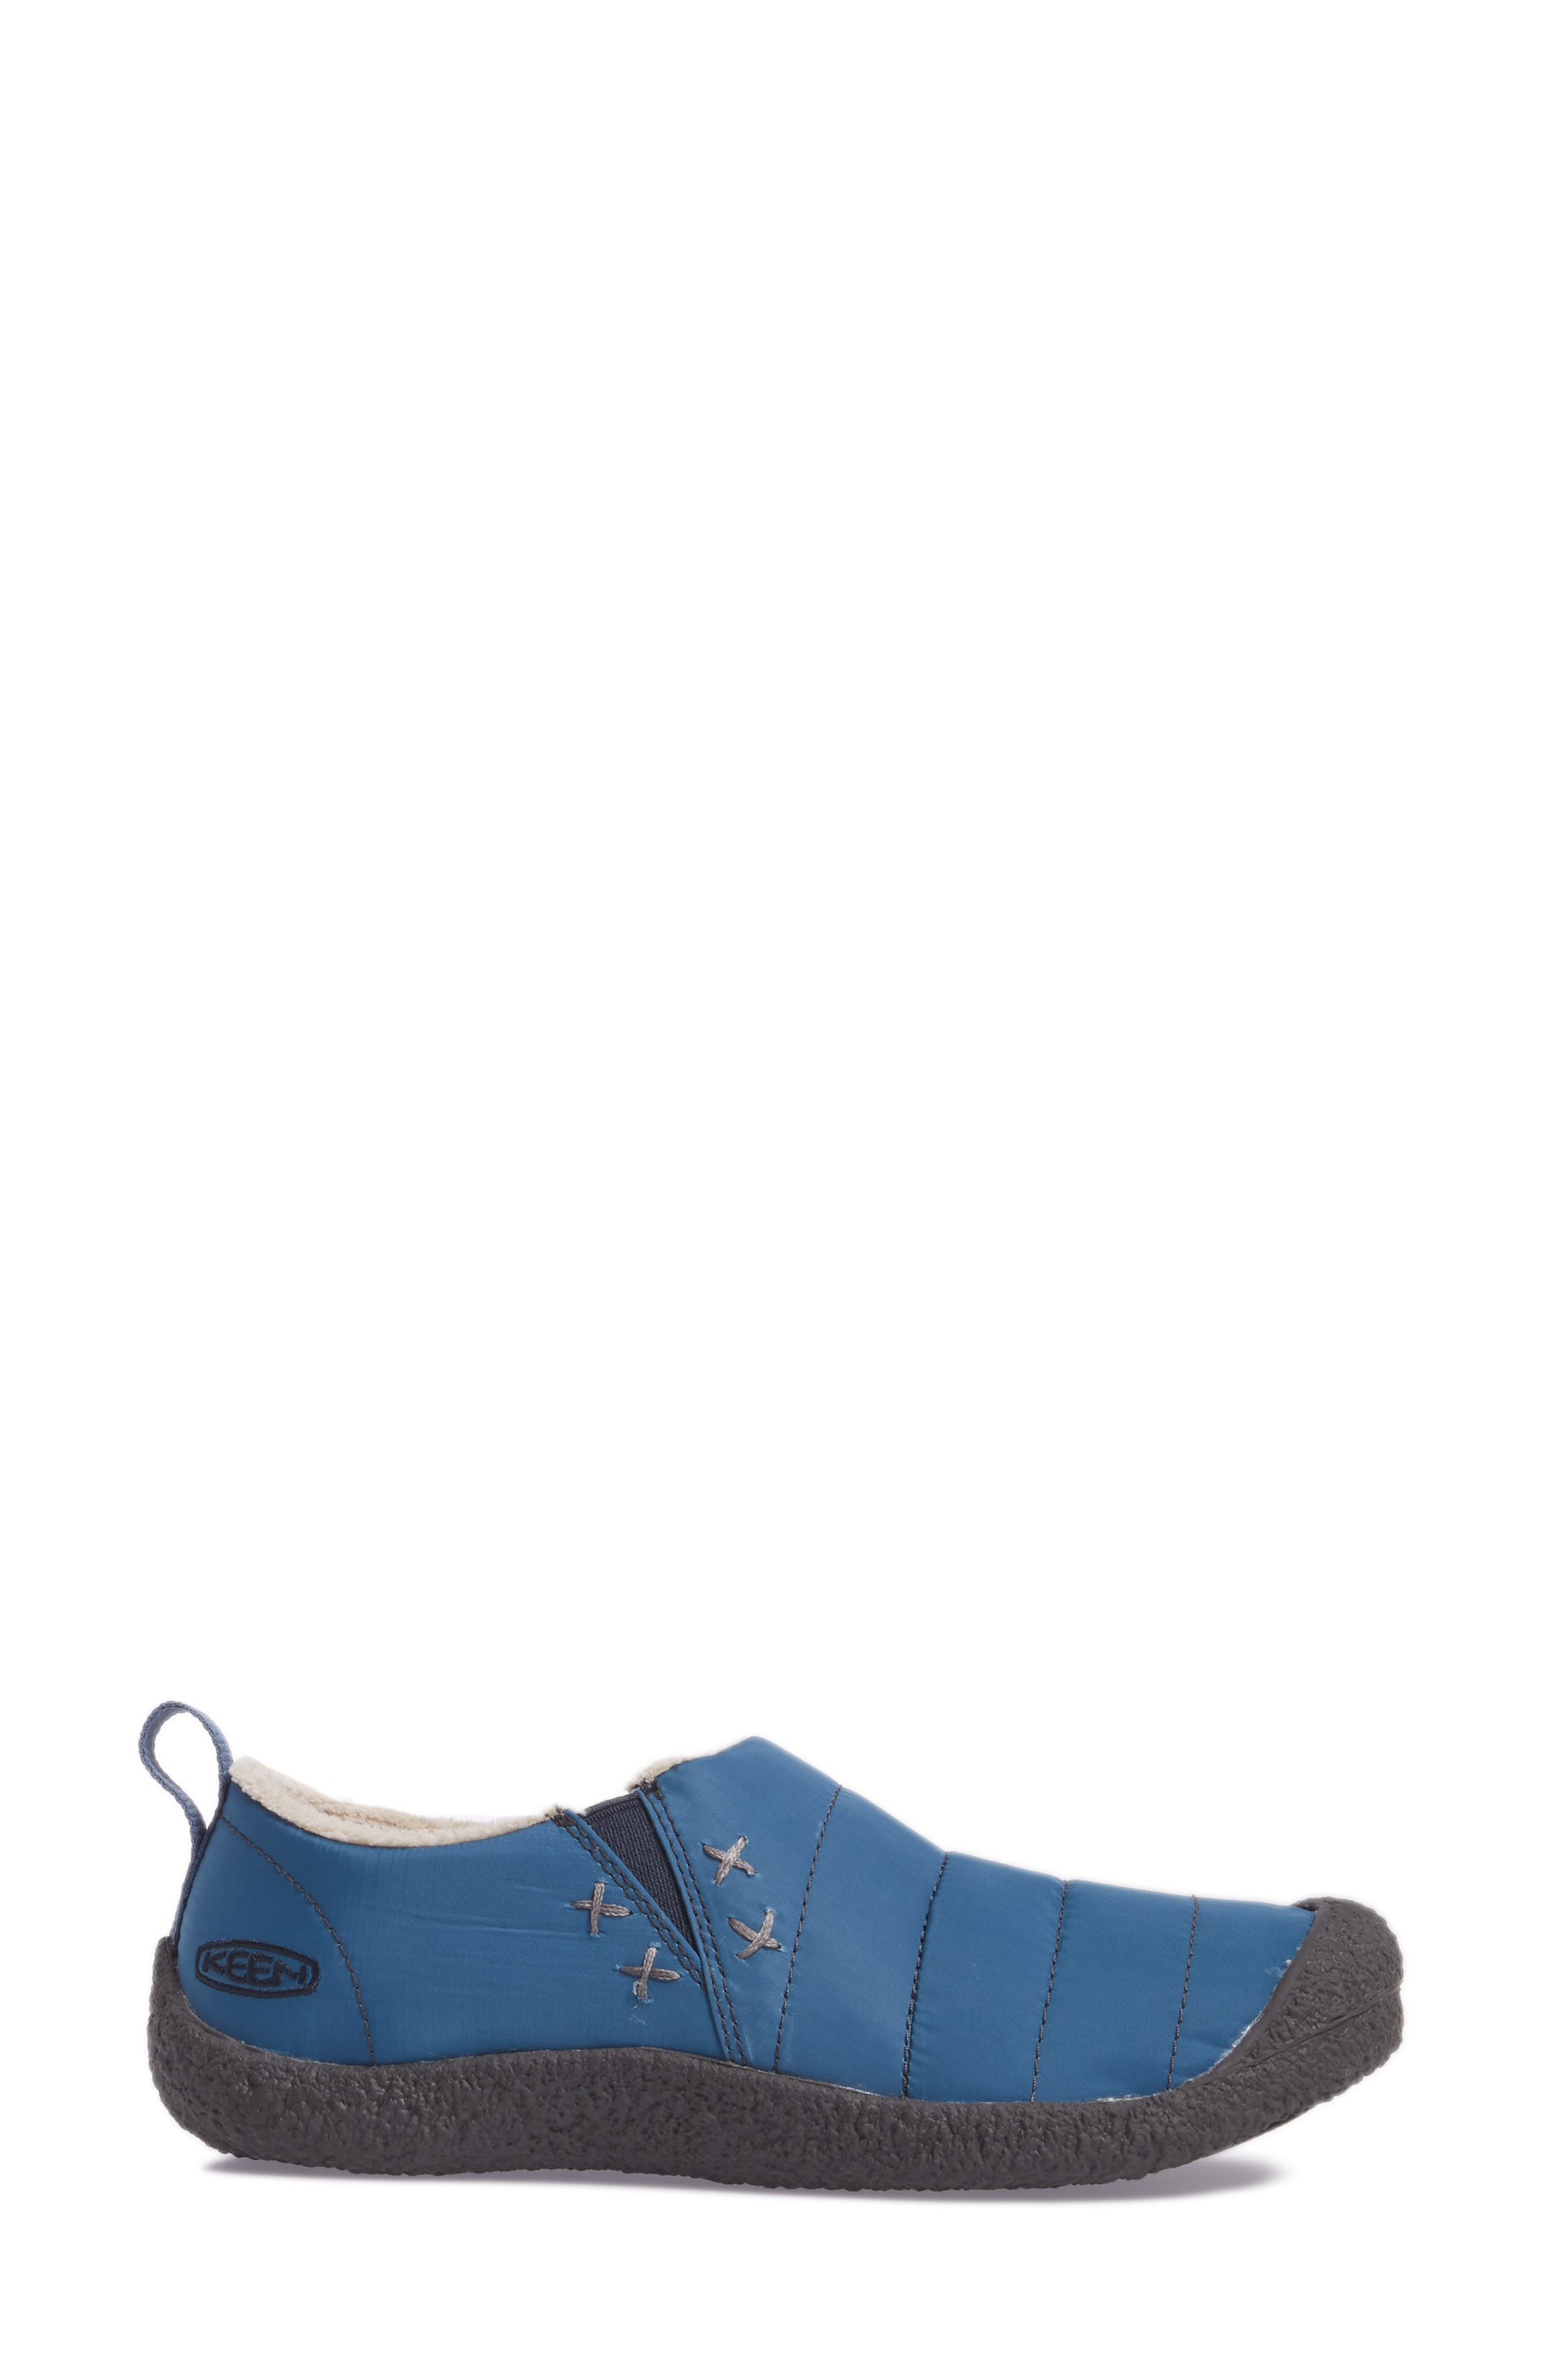 Howser II Water-Resistant Round Toe Clog,                             Alternate thumbnail 3, color,                             Captains Blue Nylon